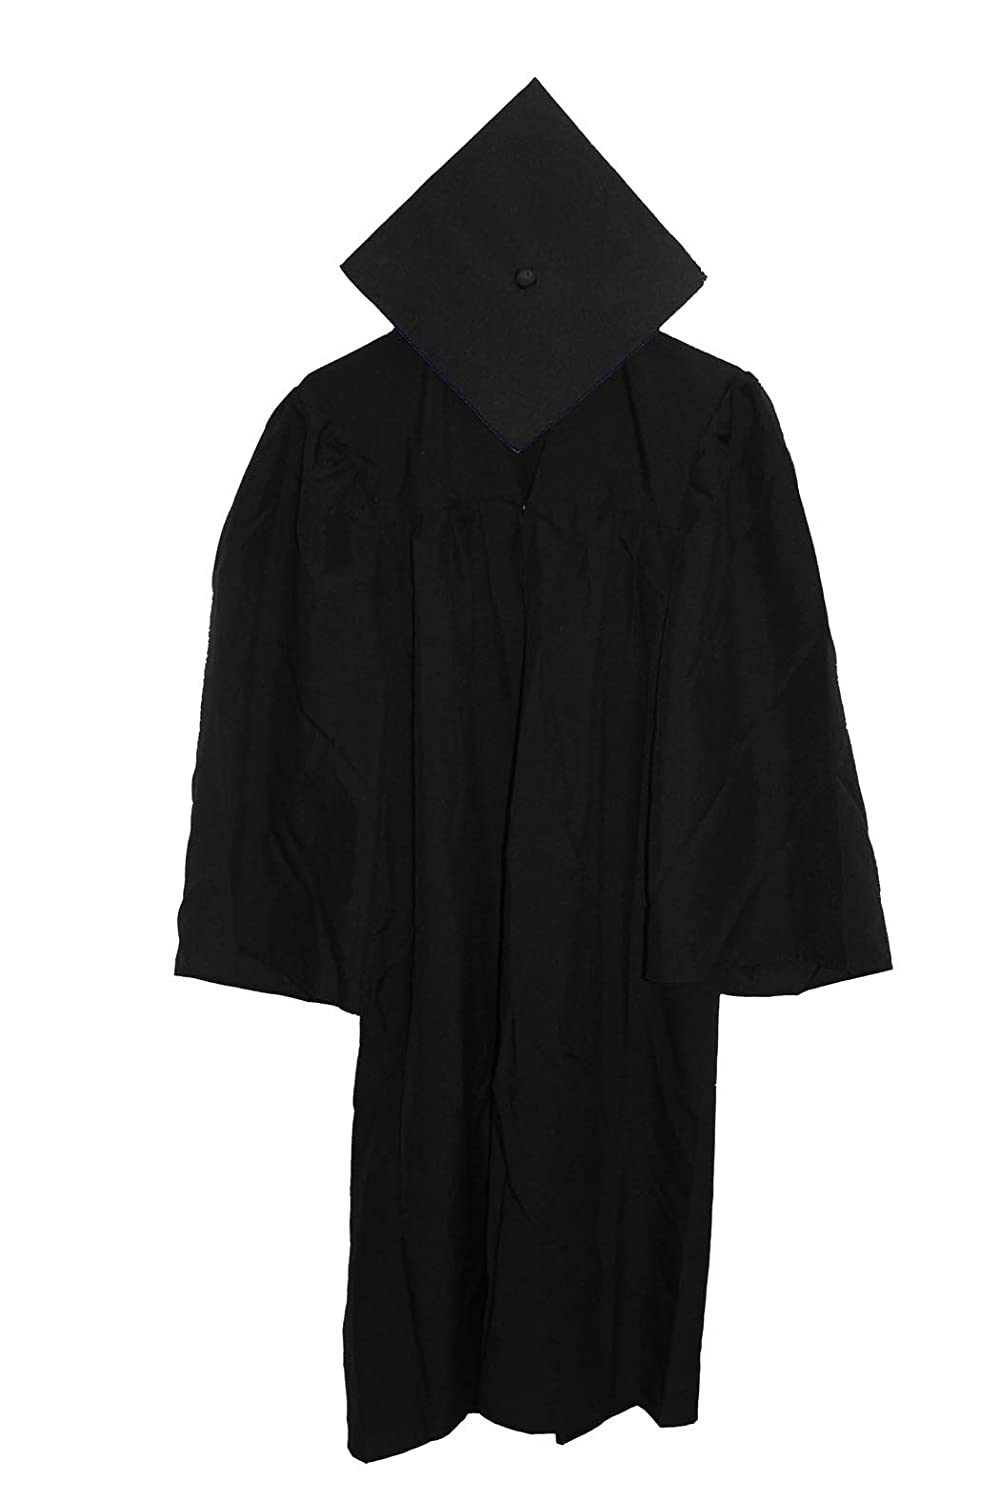 Amazon.com: Economy Cap and Gown Matte Finish Cap and Gown: Clothing